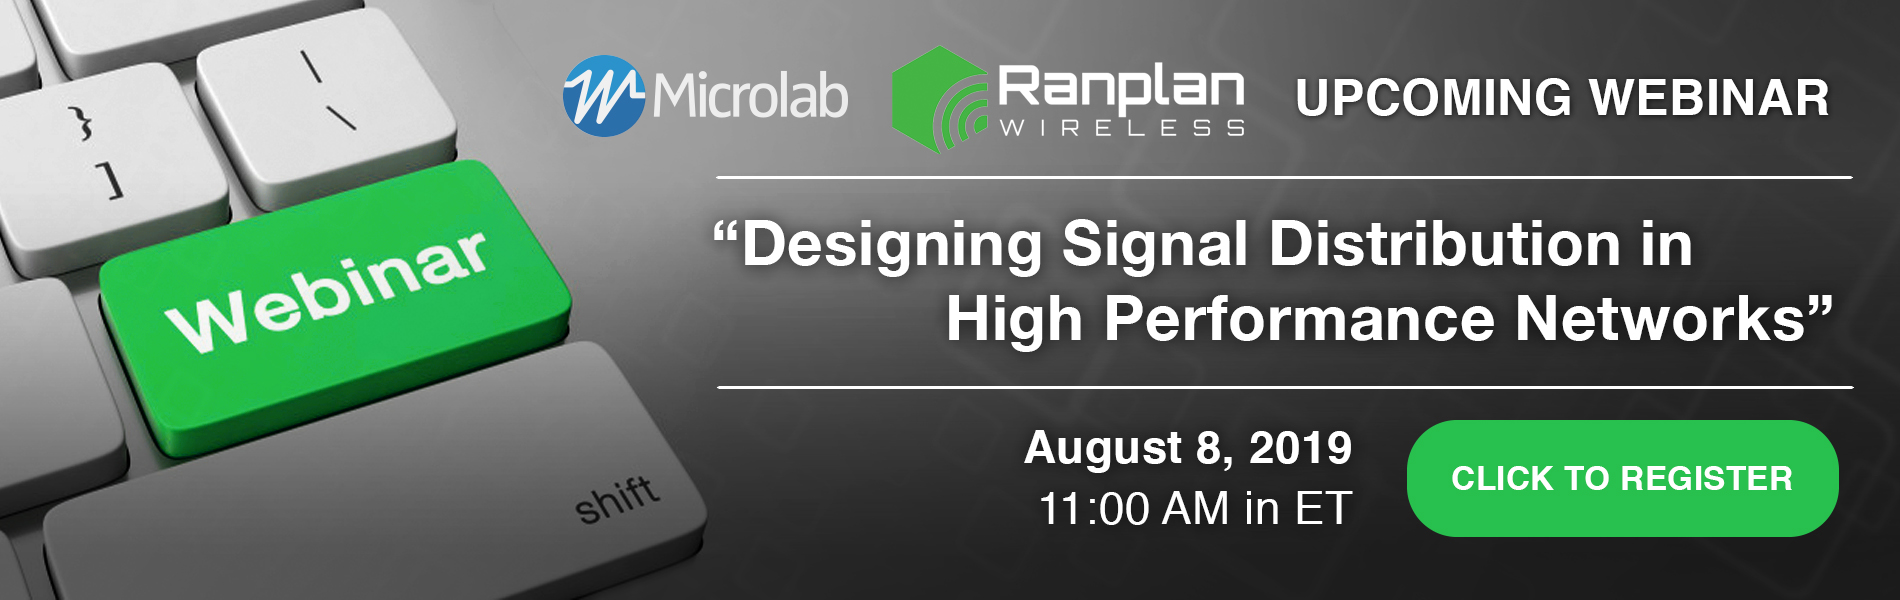 Microlab - High performance passive RF components & sub-systems